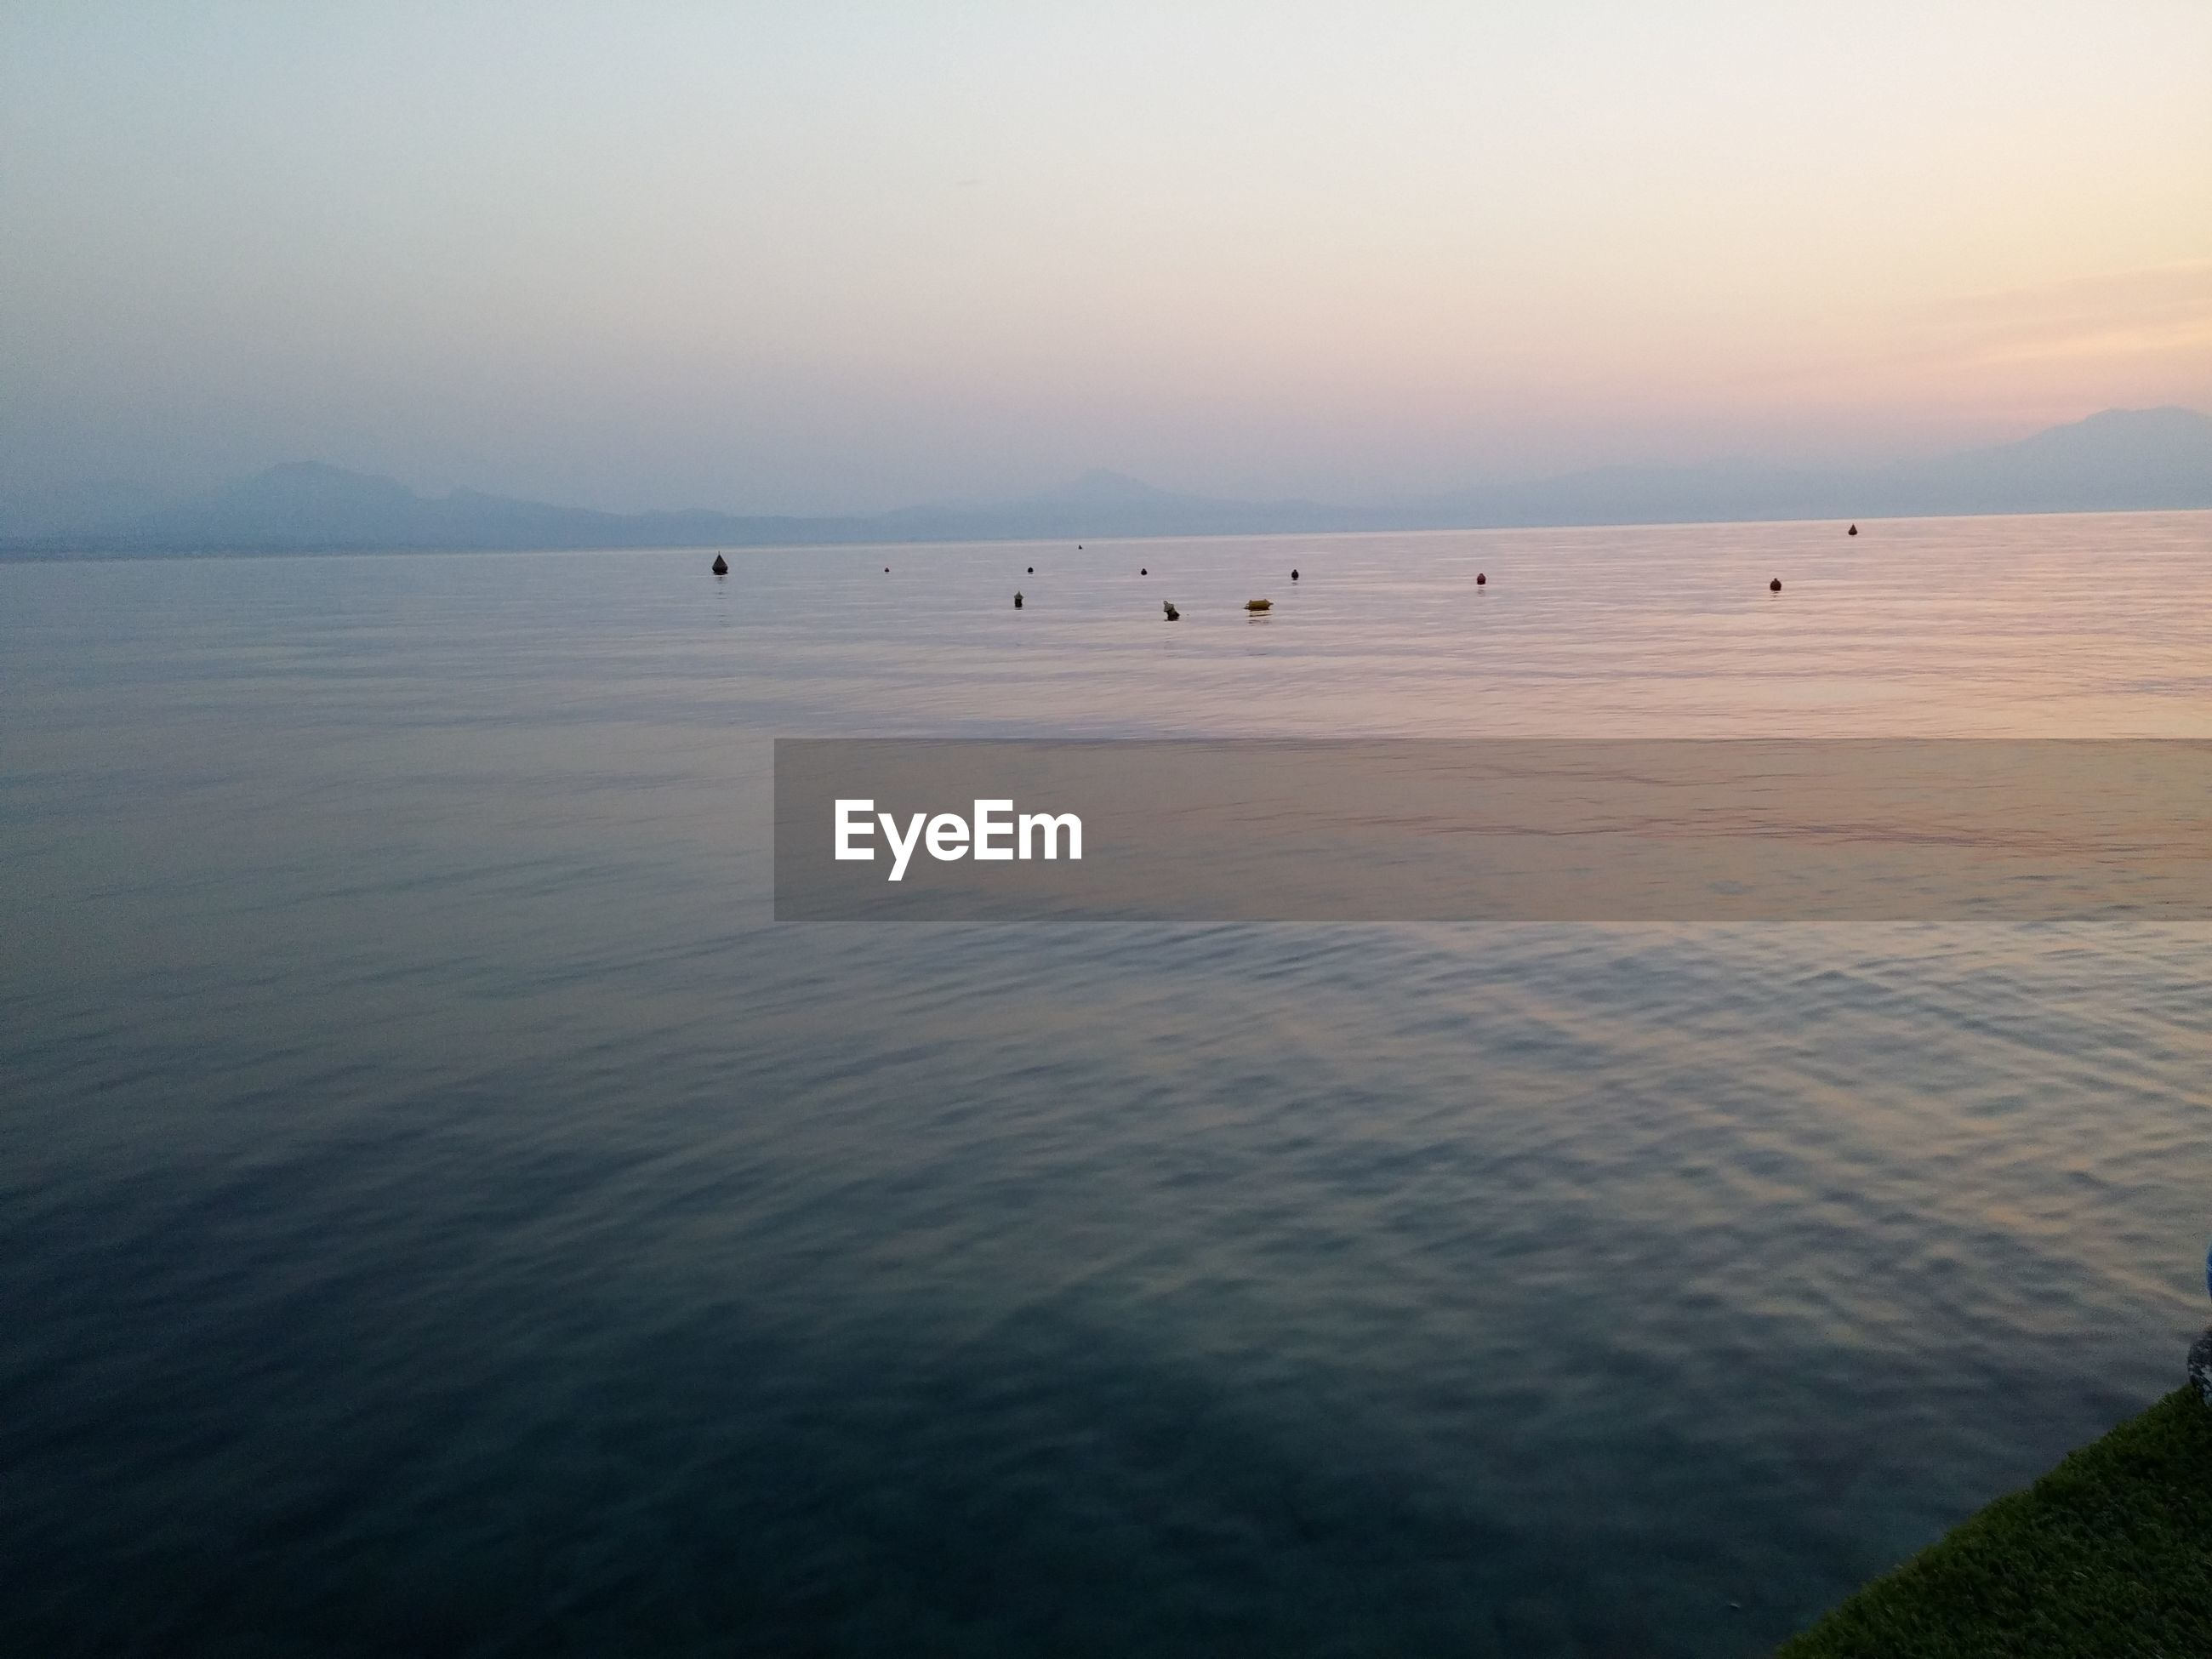 sea, water, horizon over water, tranquil scene, scenics, tranquility, beauty in nature, beach, sky, nature, sunset, idyllic, waterfront, copy space, rippled, seascape, shore, incidental people, clear sky, outdoors